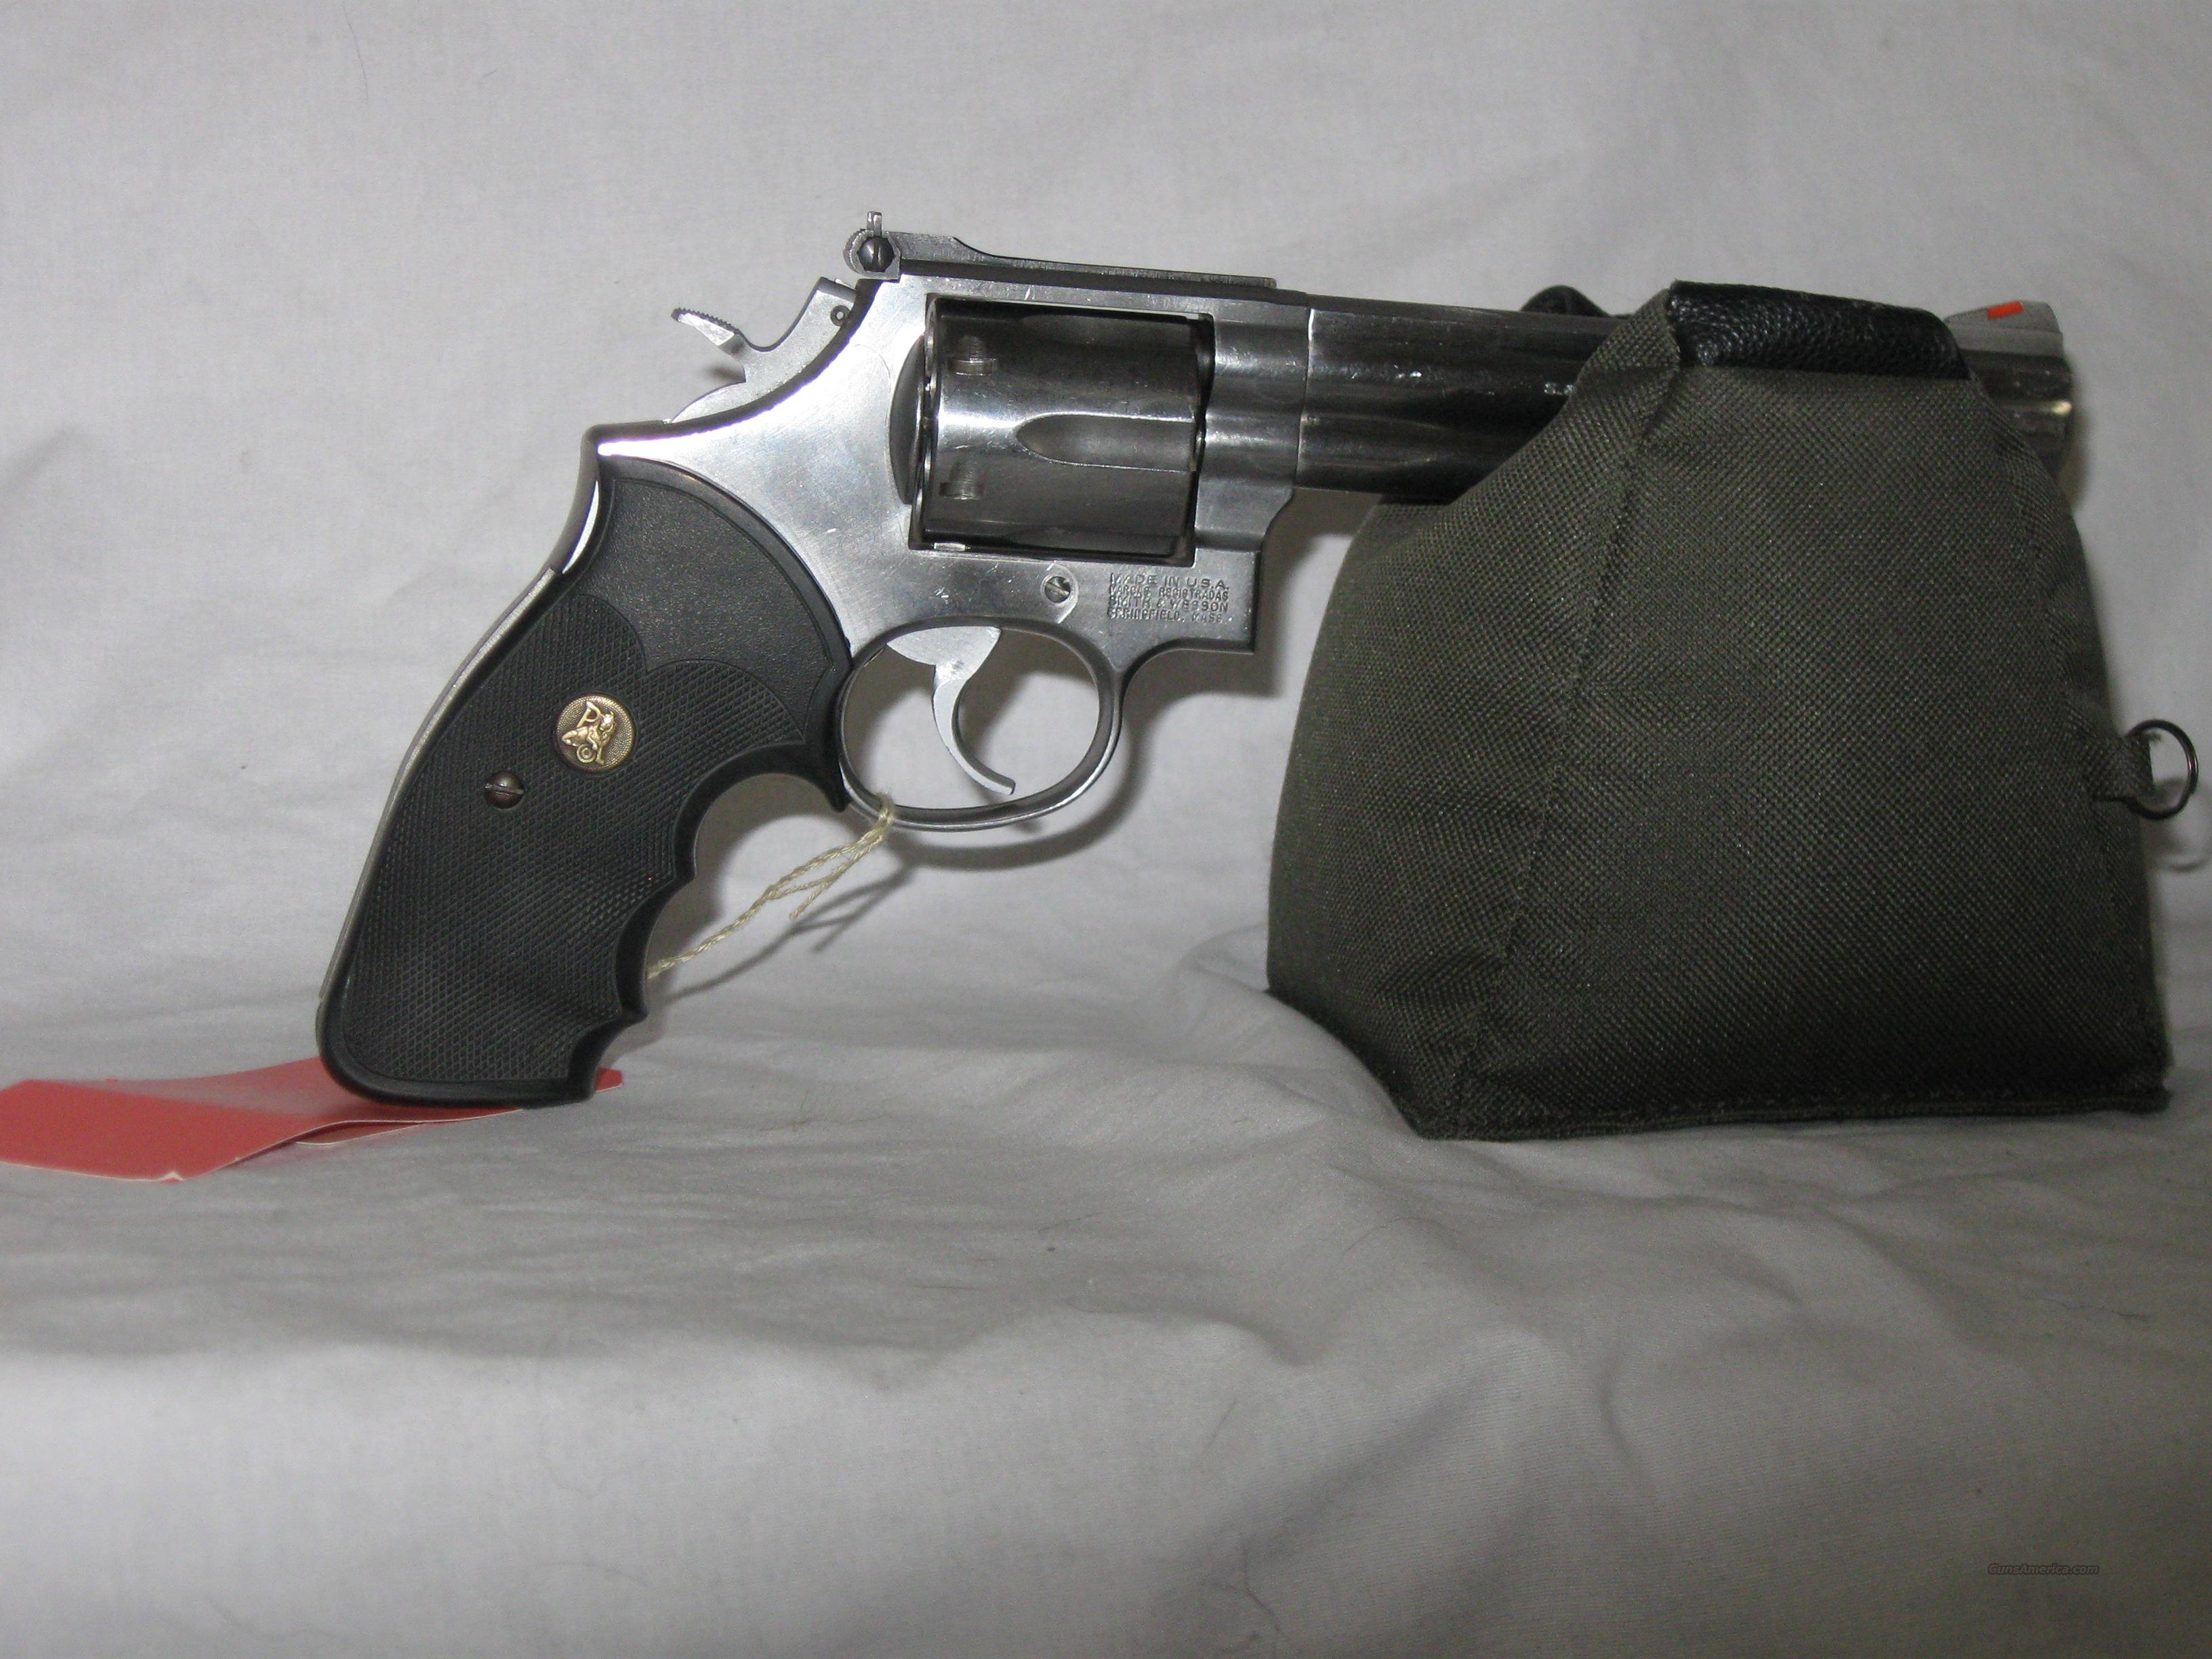 Smith & Wesson Model 686-2  Guns > Pistols > Smith & Wesson Revolvers > Full Frame Revolver